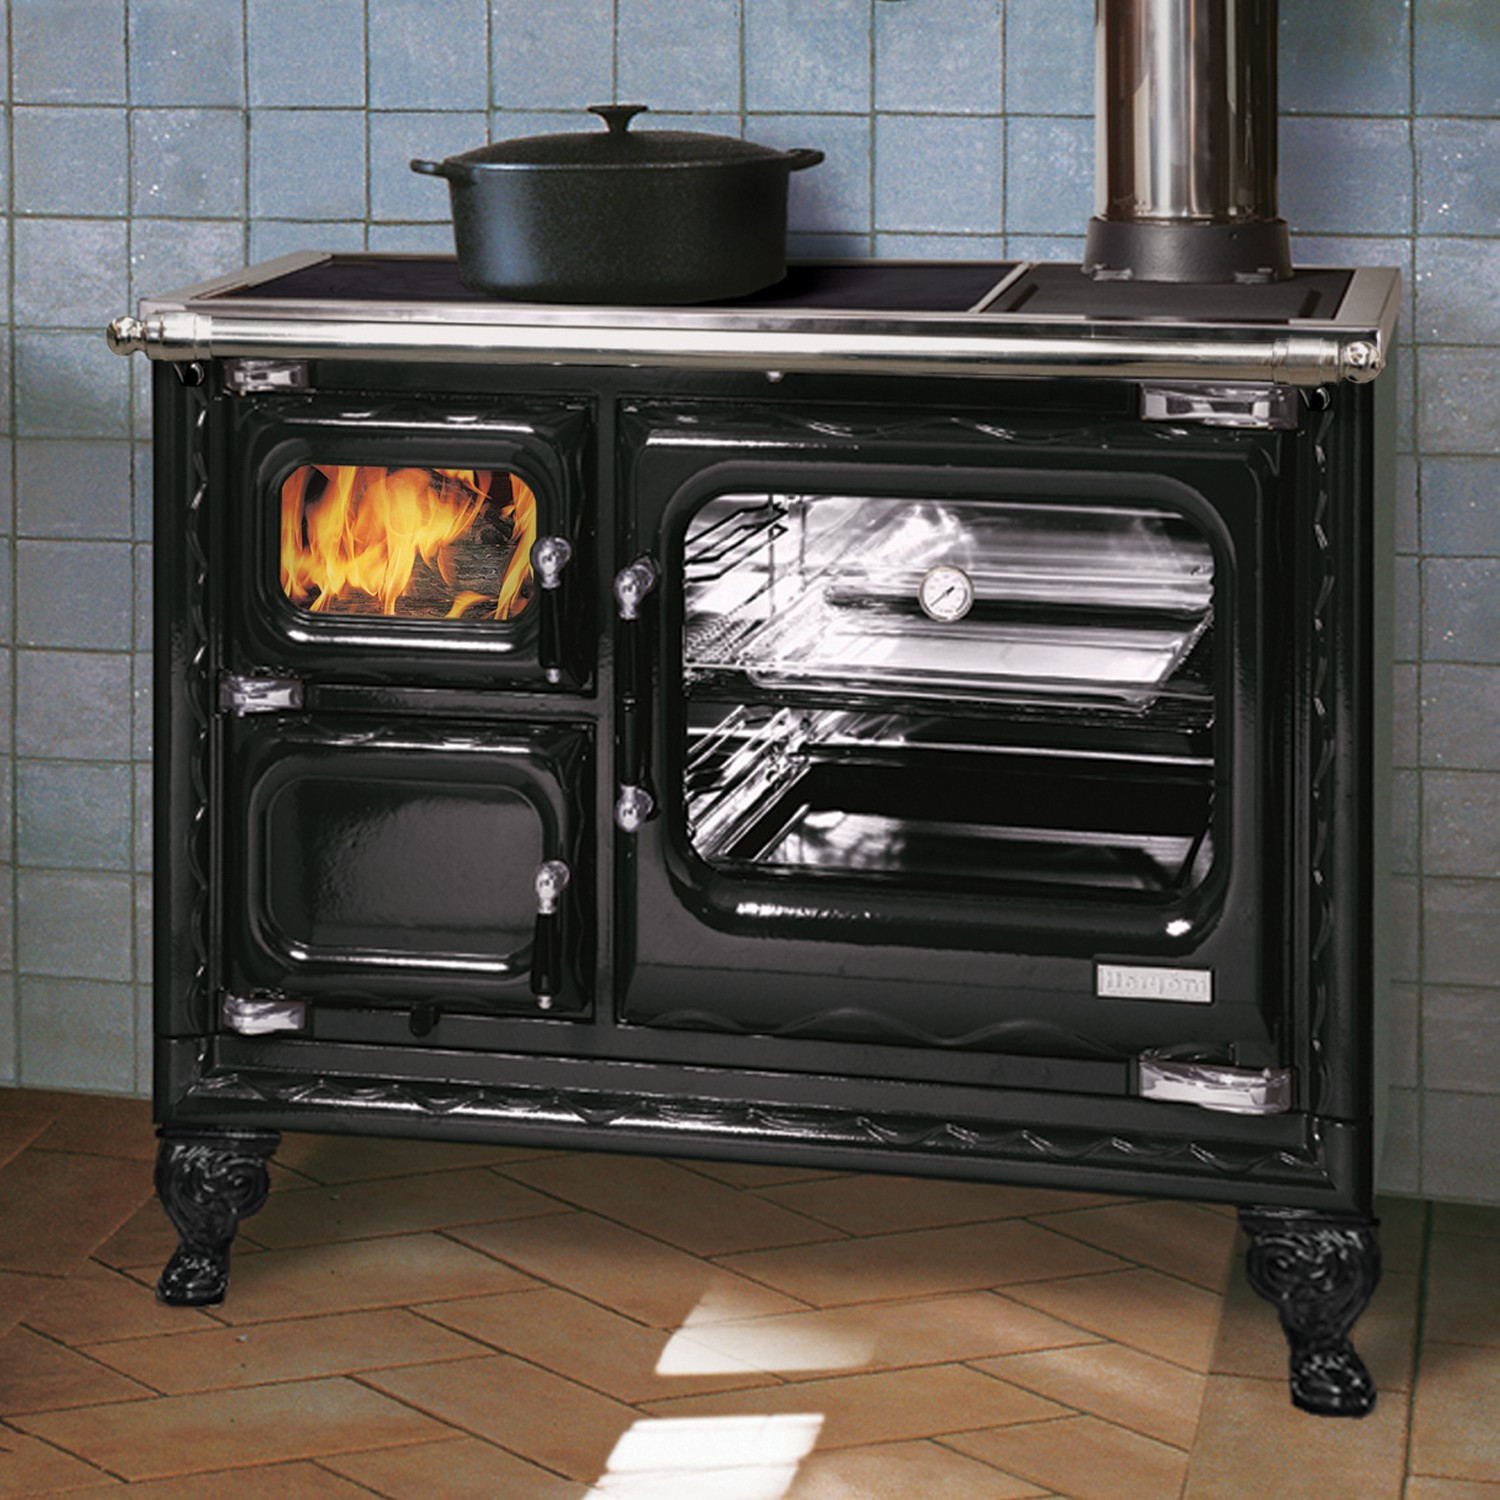 Hearthstone Deva Wood Cookstove